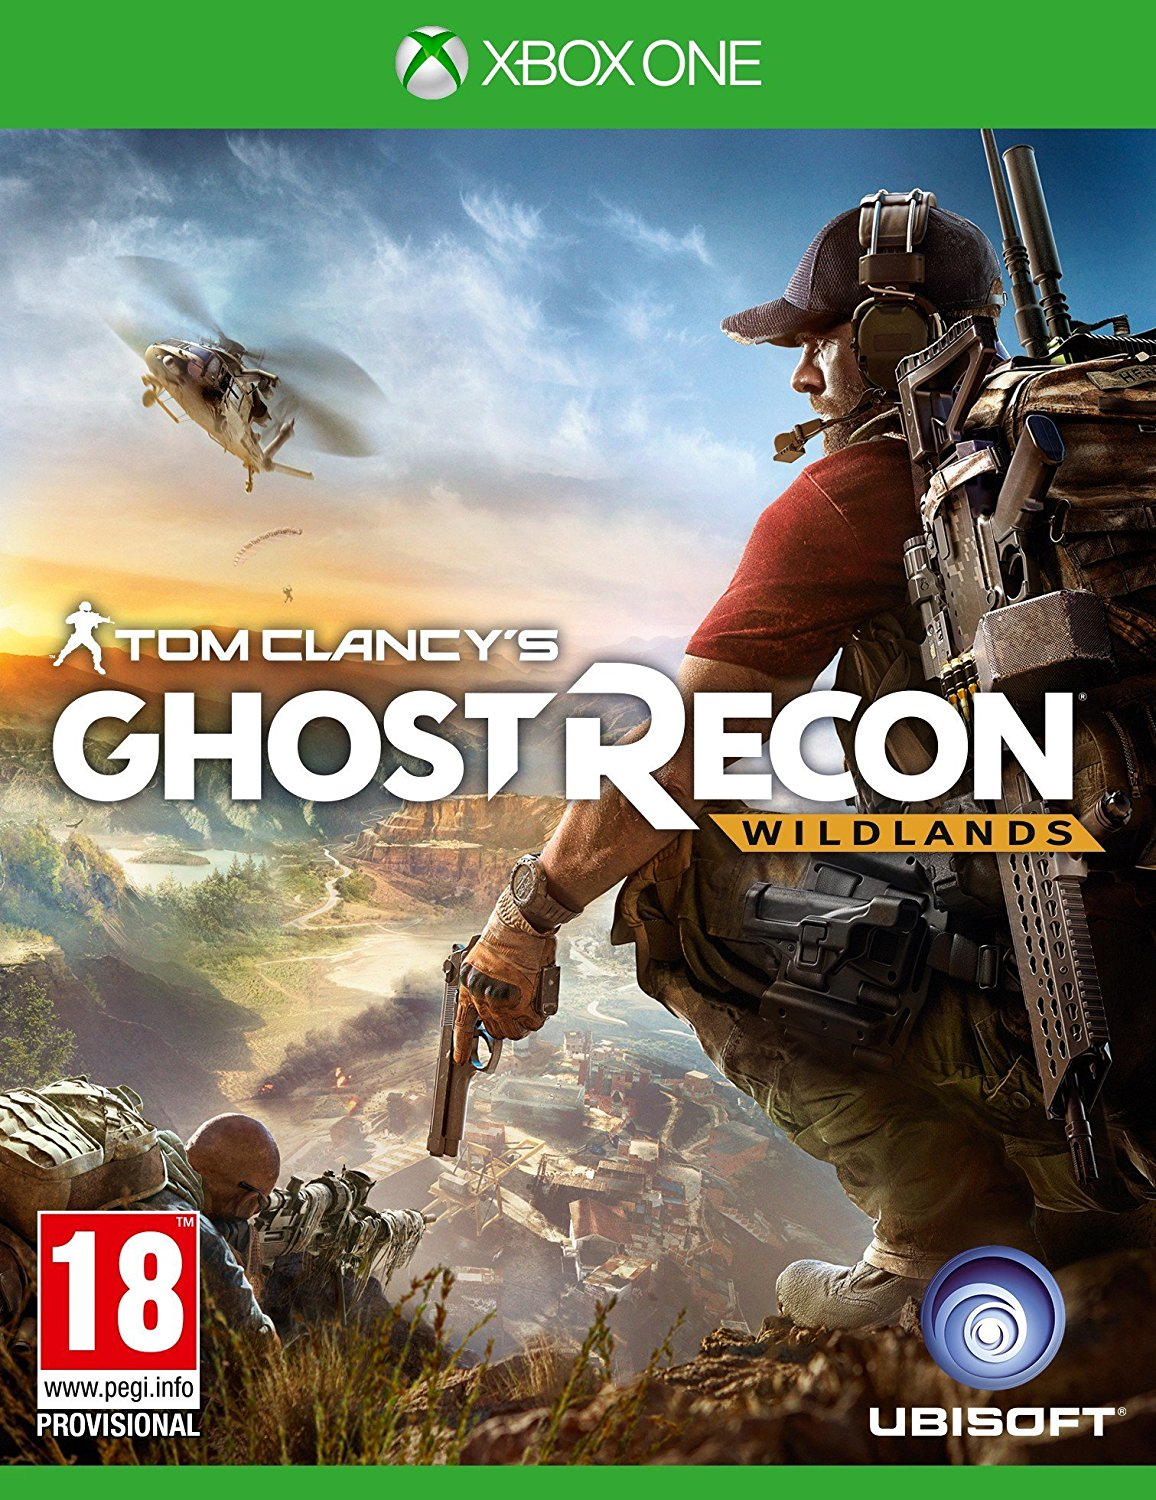 Tom Clancy's Ghost Recon: Wildlands (Xbox One)